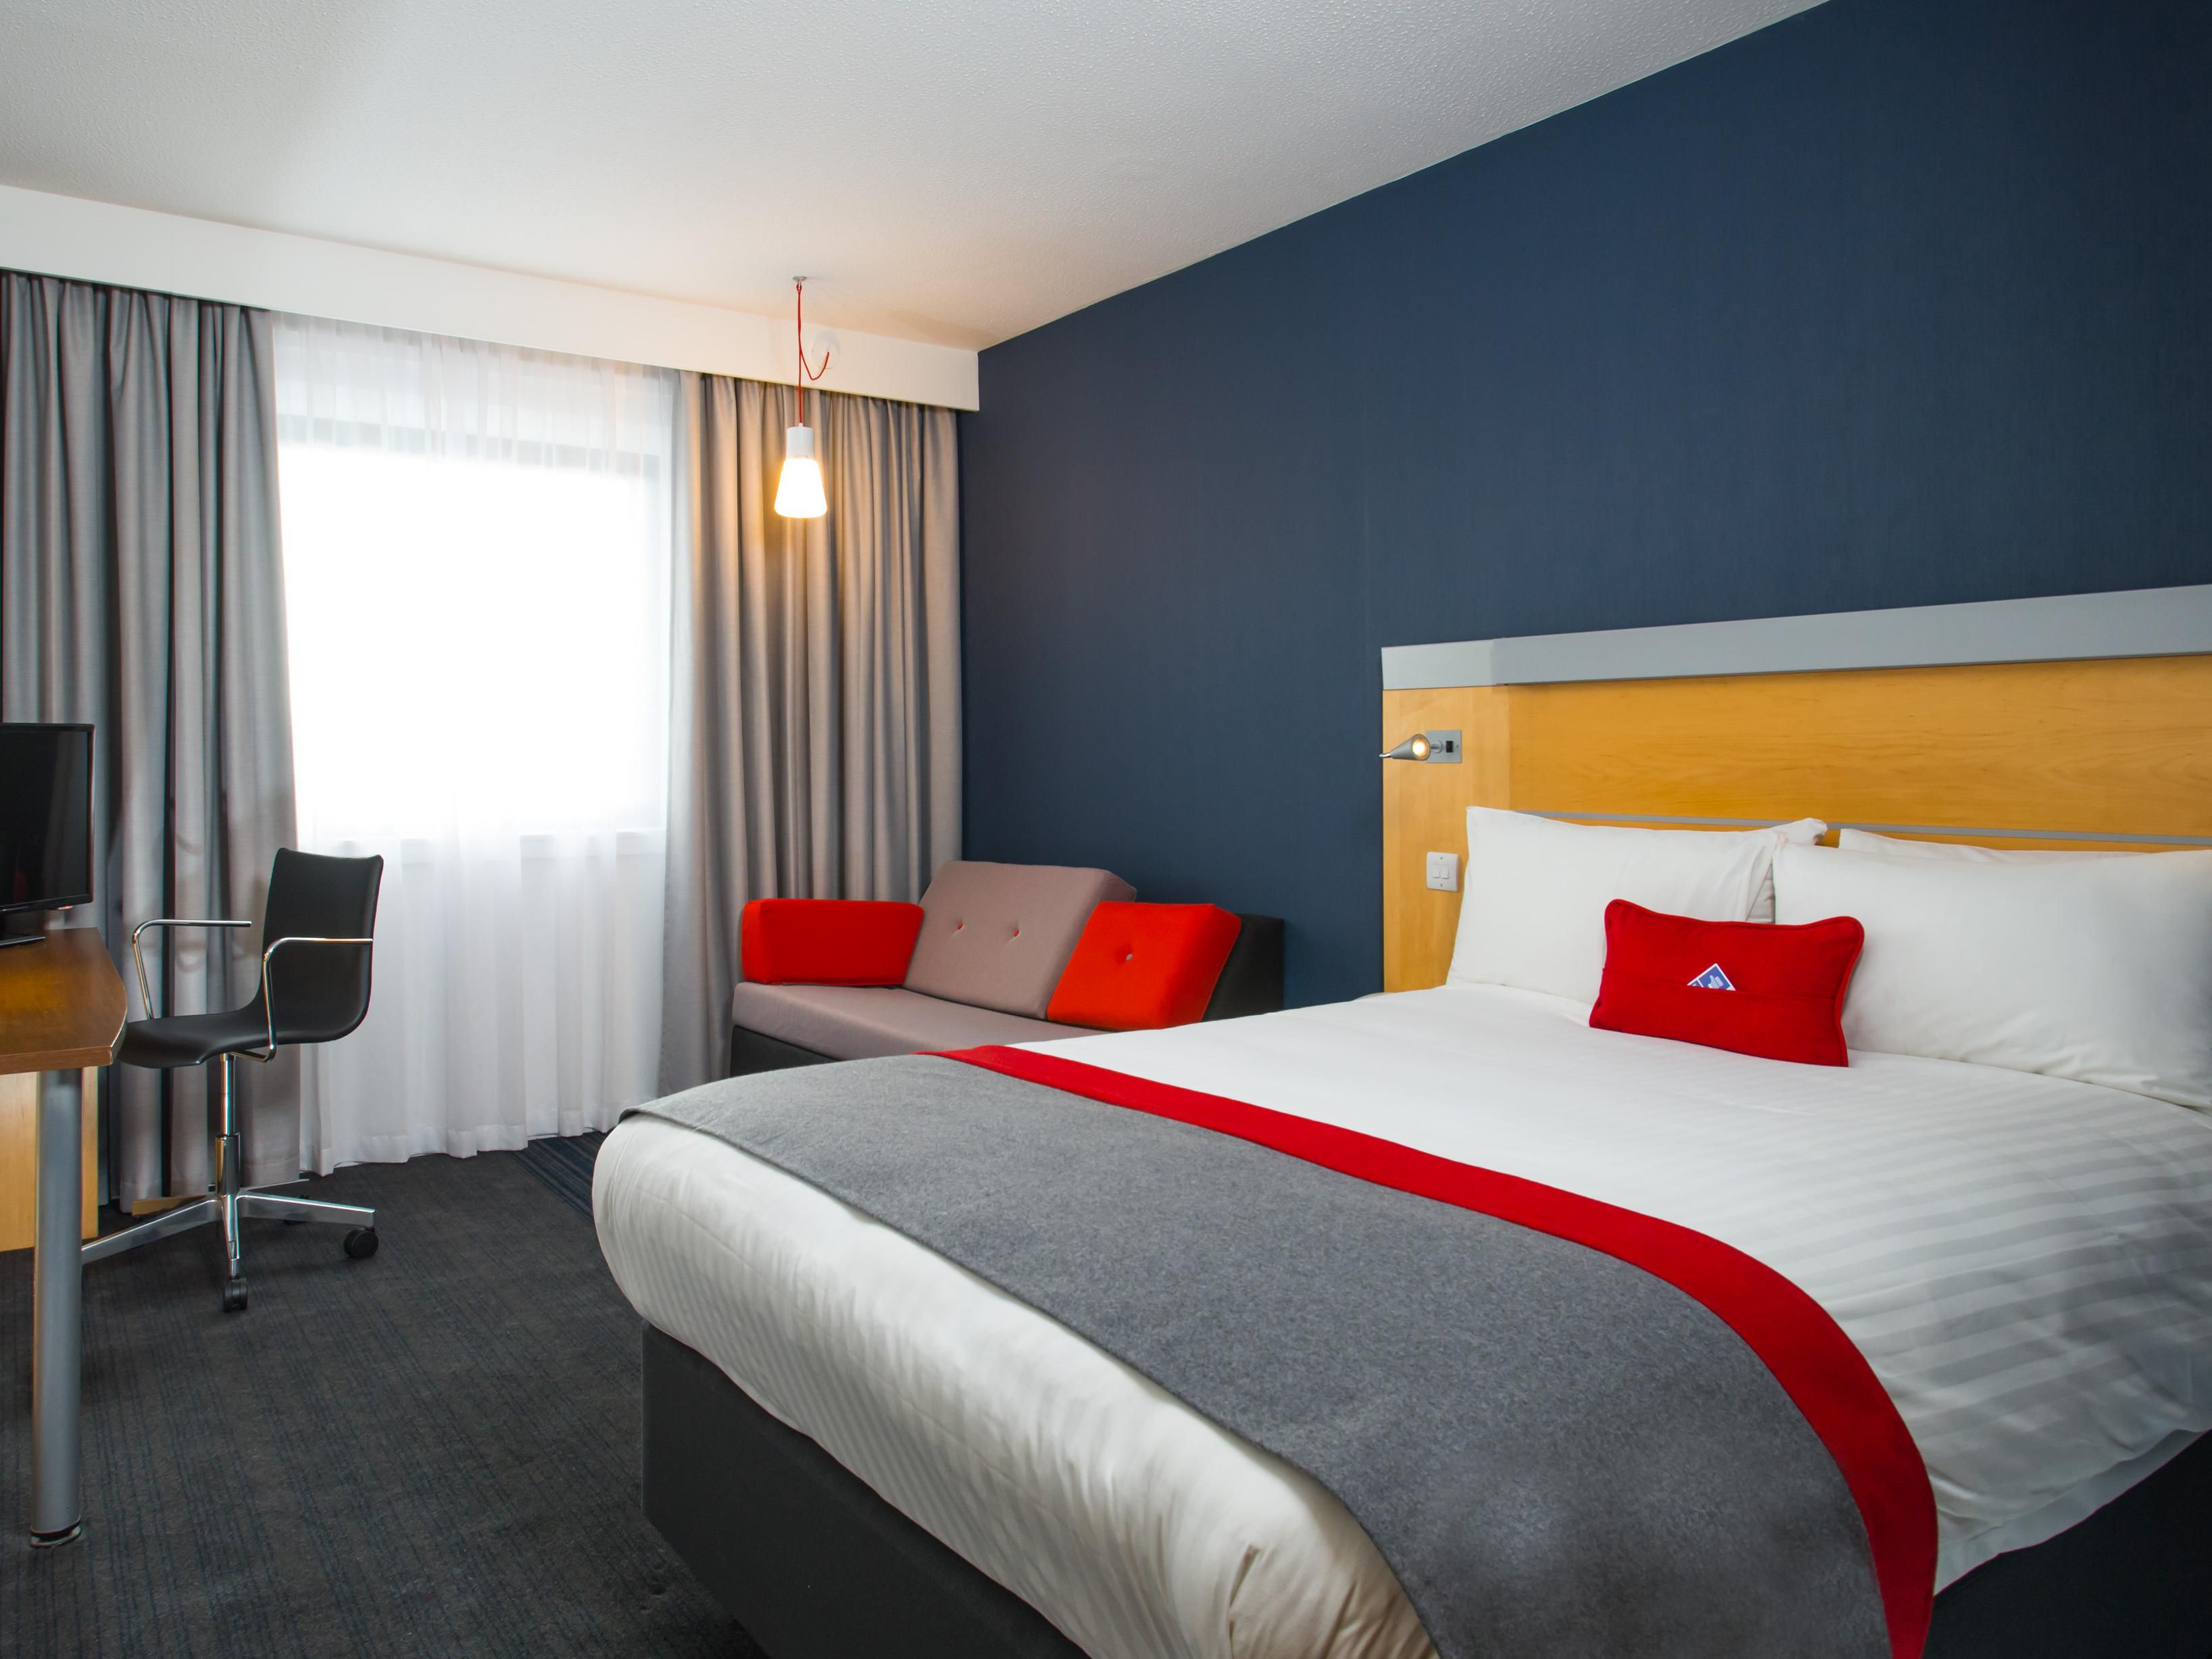 Our rooms have had a makeover! We love them. What do you think?